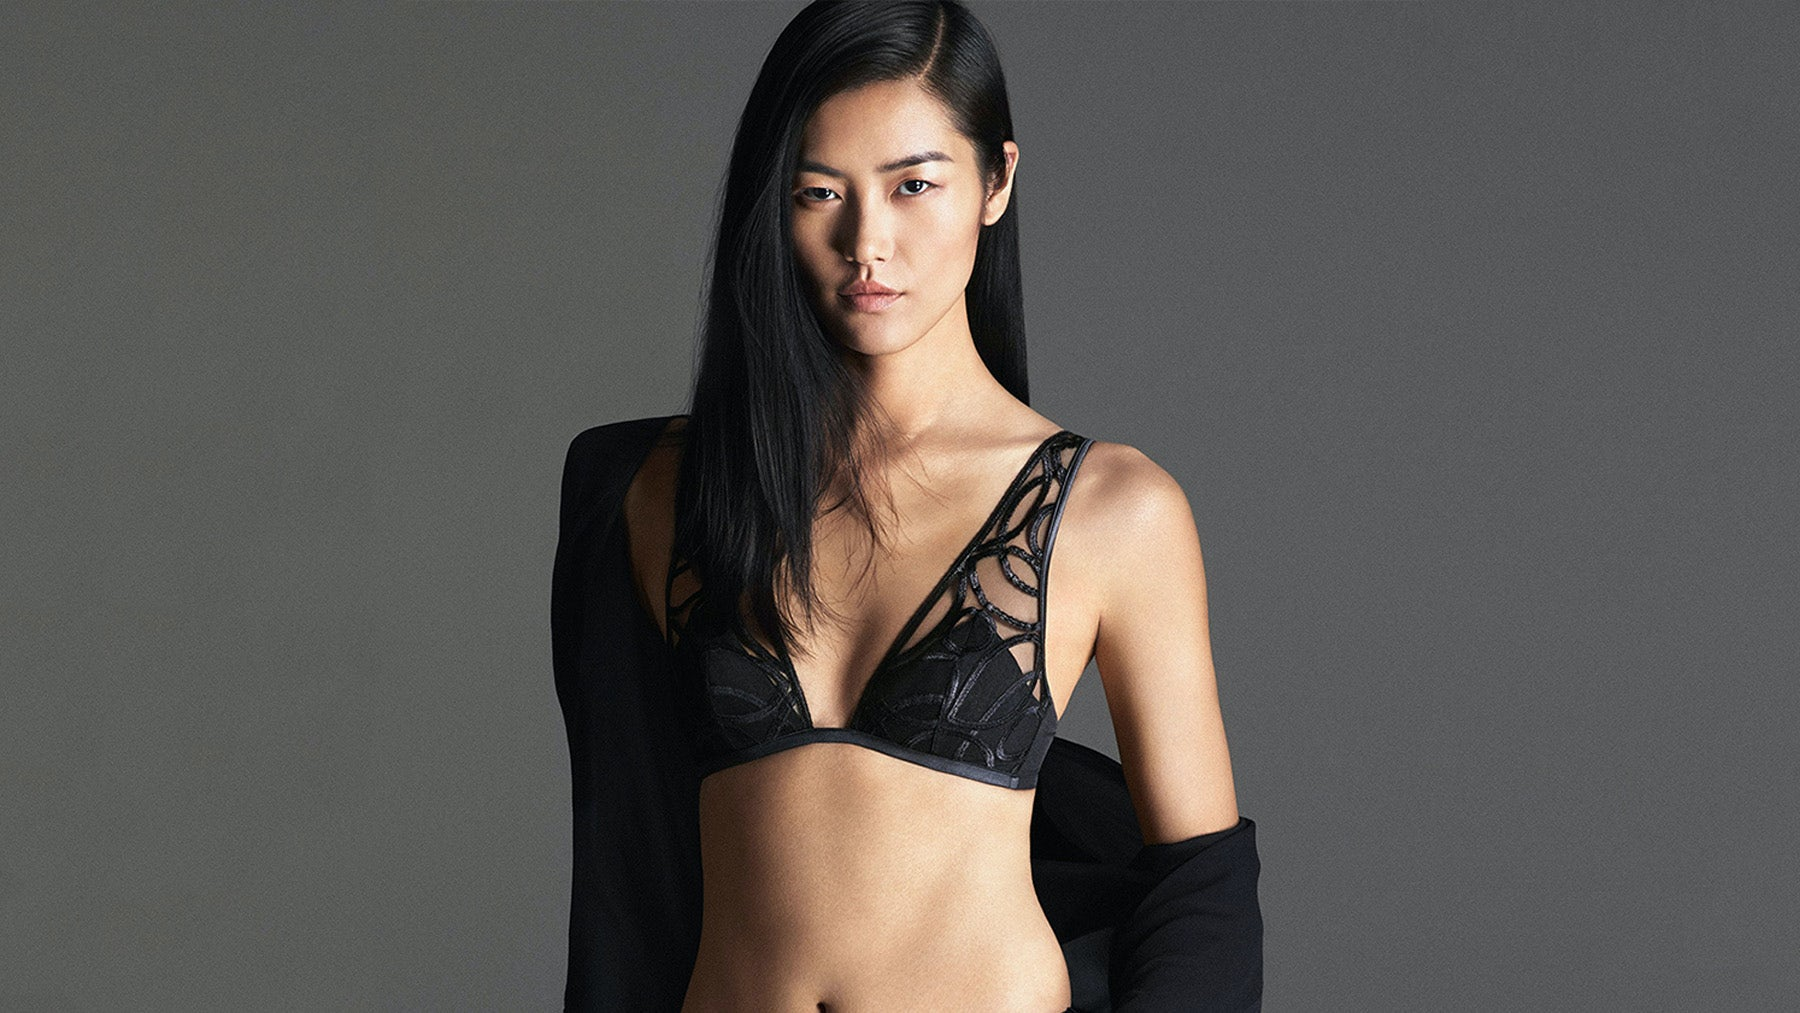 As China Cools, Lingerie Heats Up